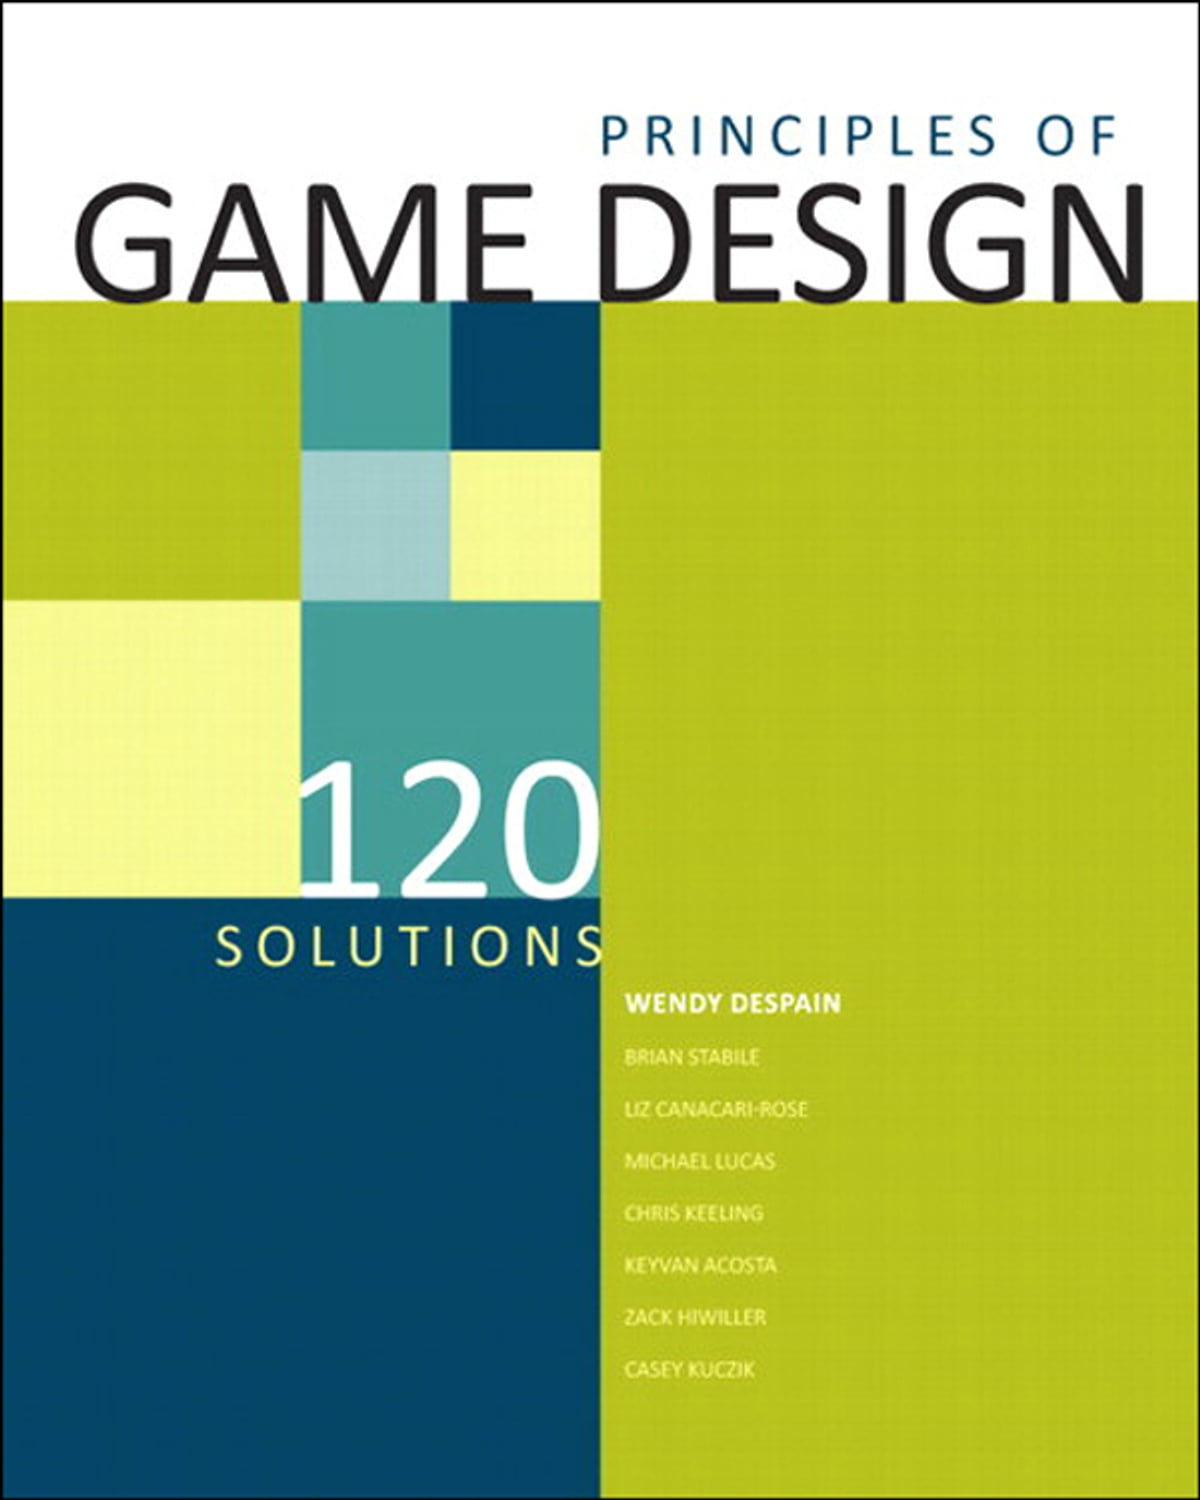 100 Principles of Game Design eBook by Wendy Despain - 9780133362749 |  Rakuten Kobo